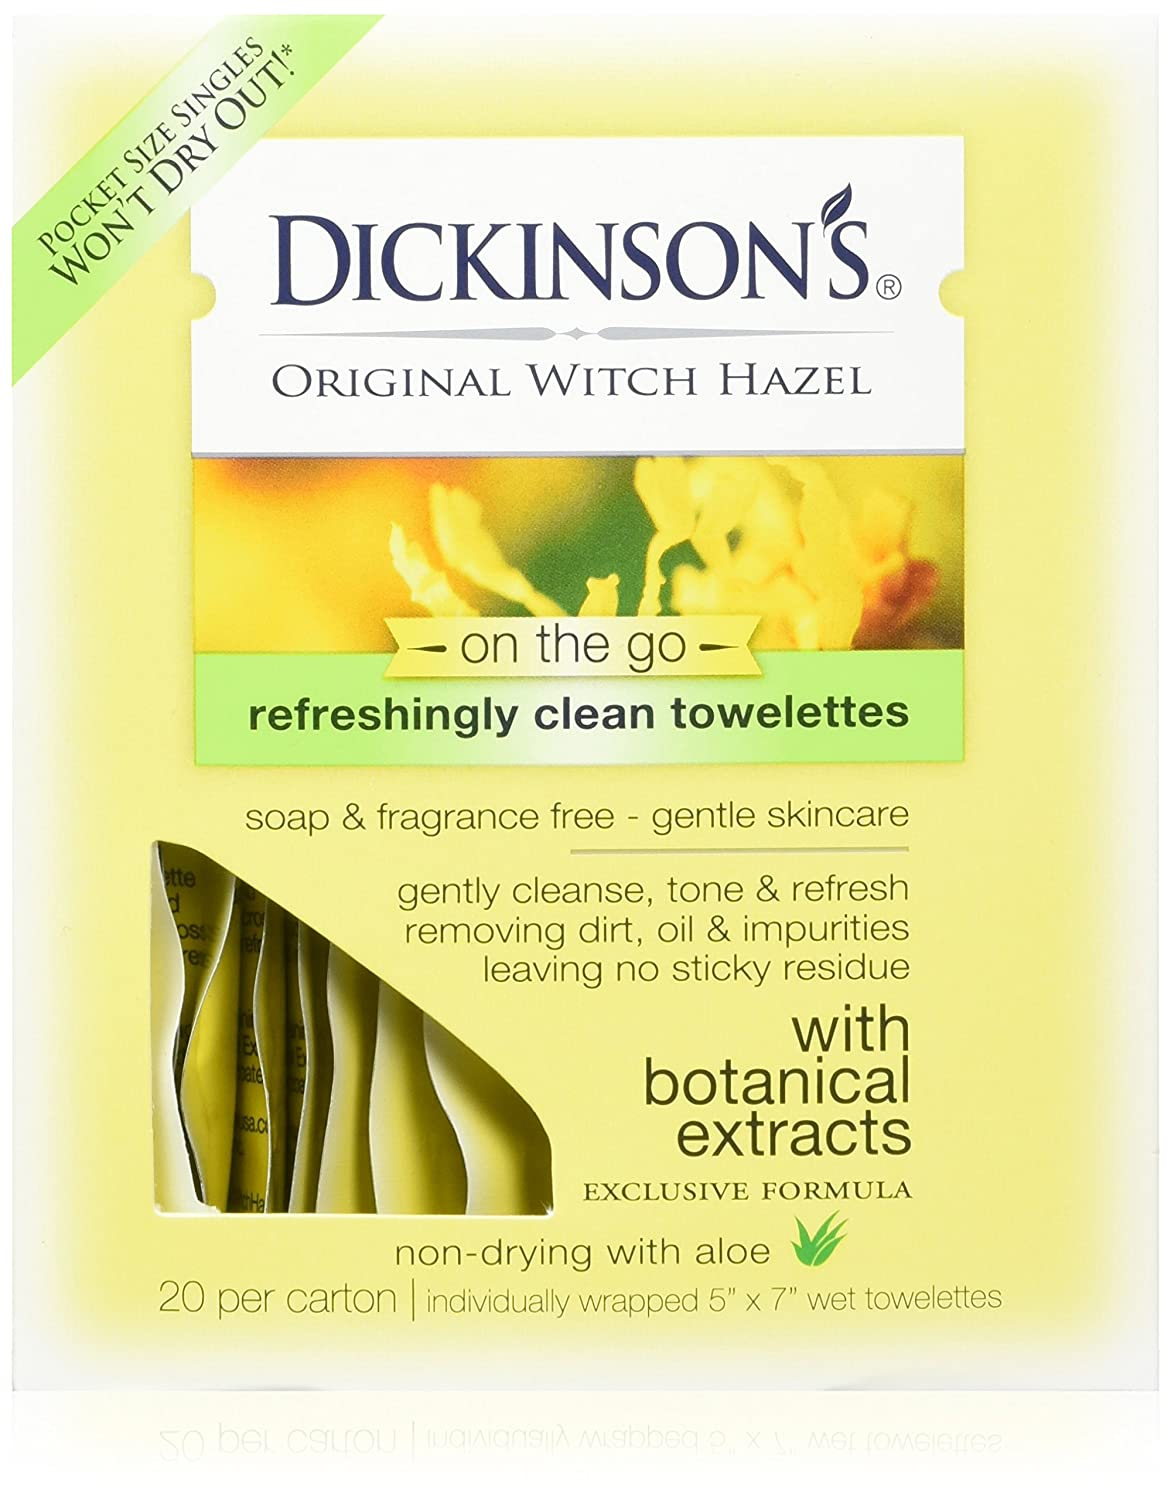 Dickinson's Original Witch Hazel Refreshingly Clean Towelettes 20 Each (Pack of 3) Everready First Aid